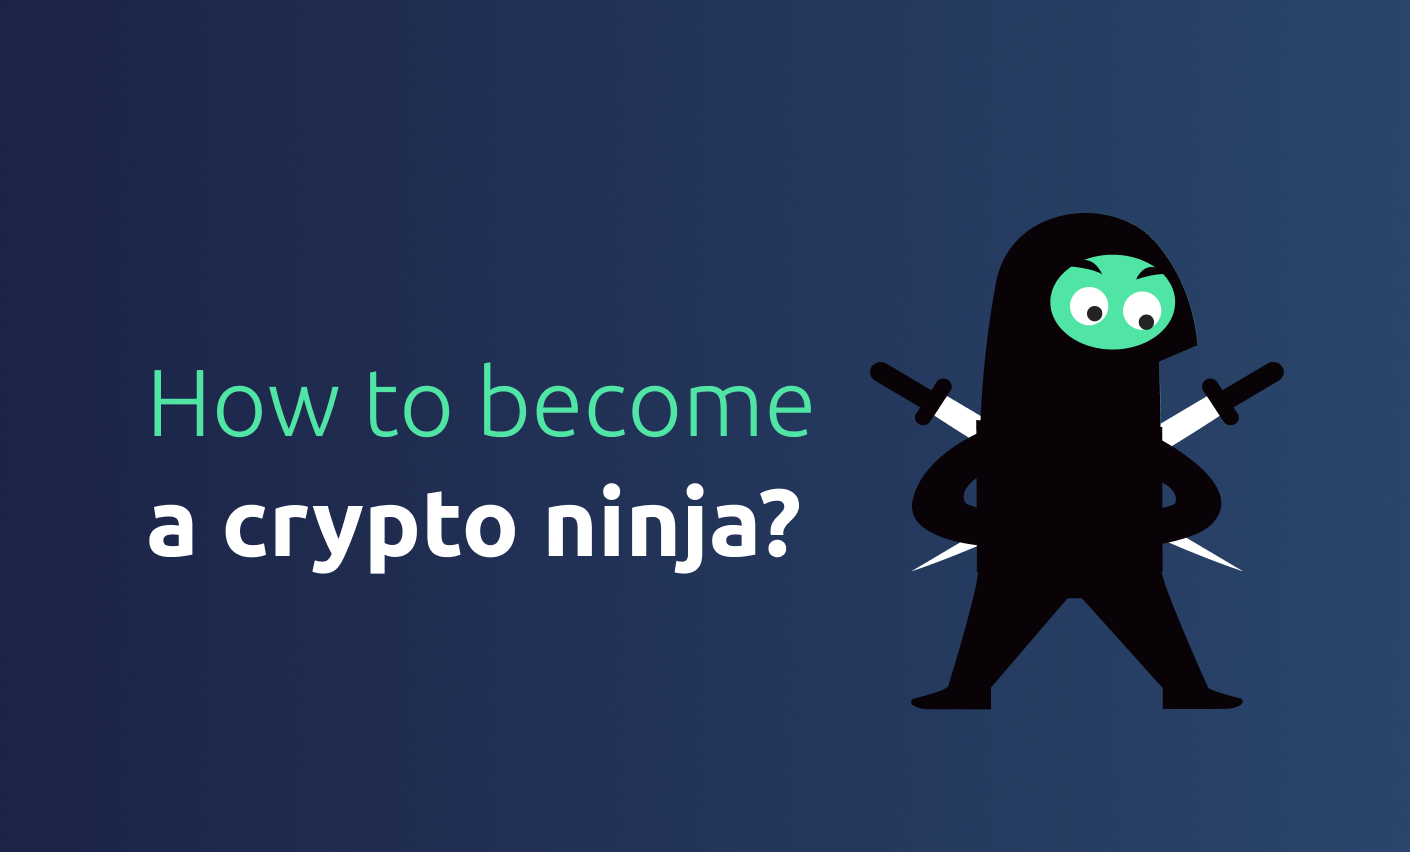 How to become a crypto ninja - By